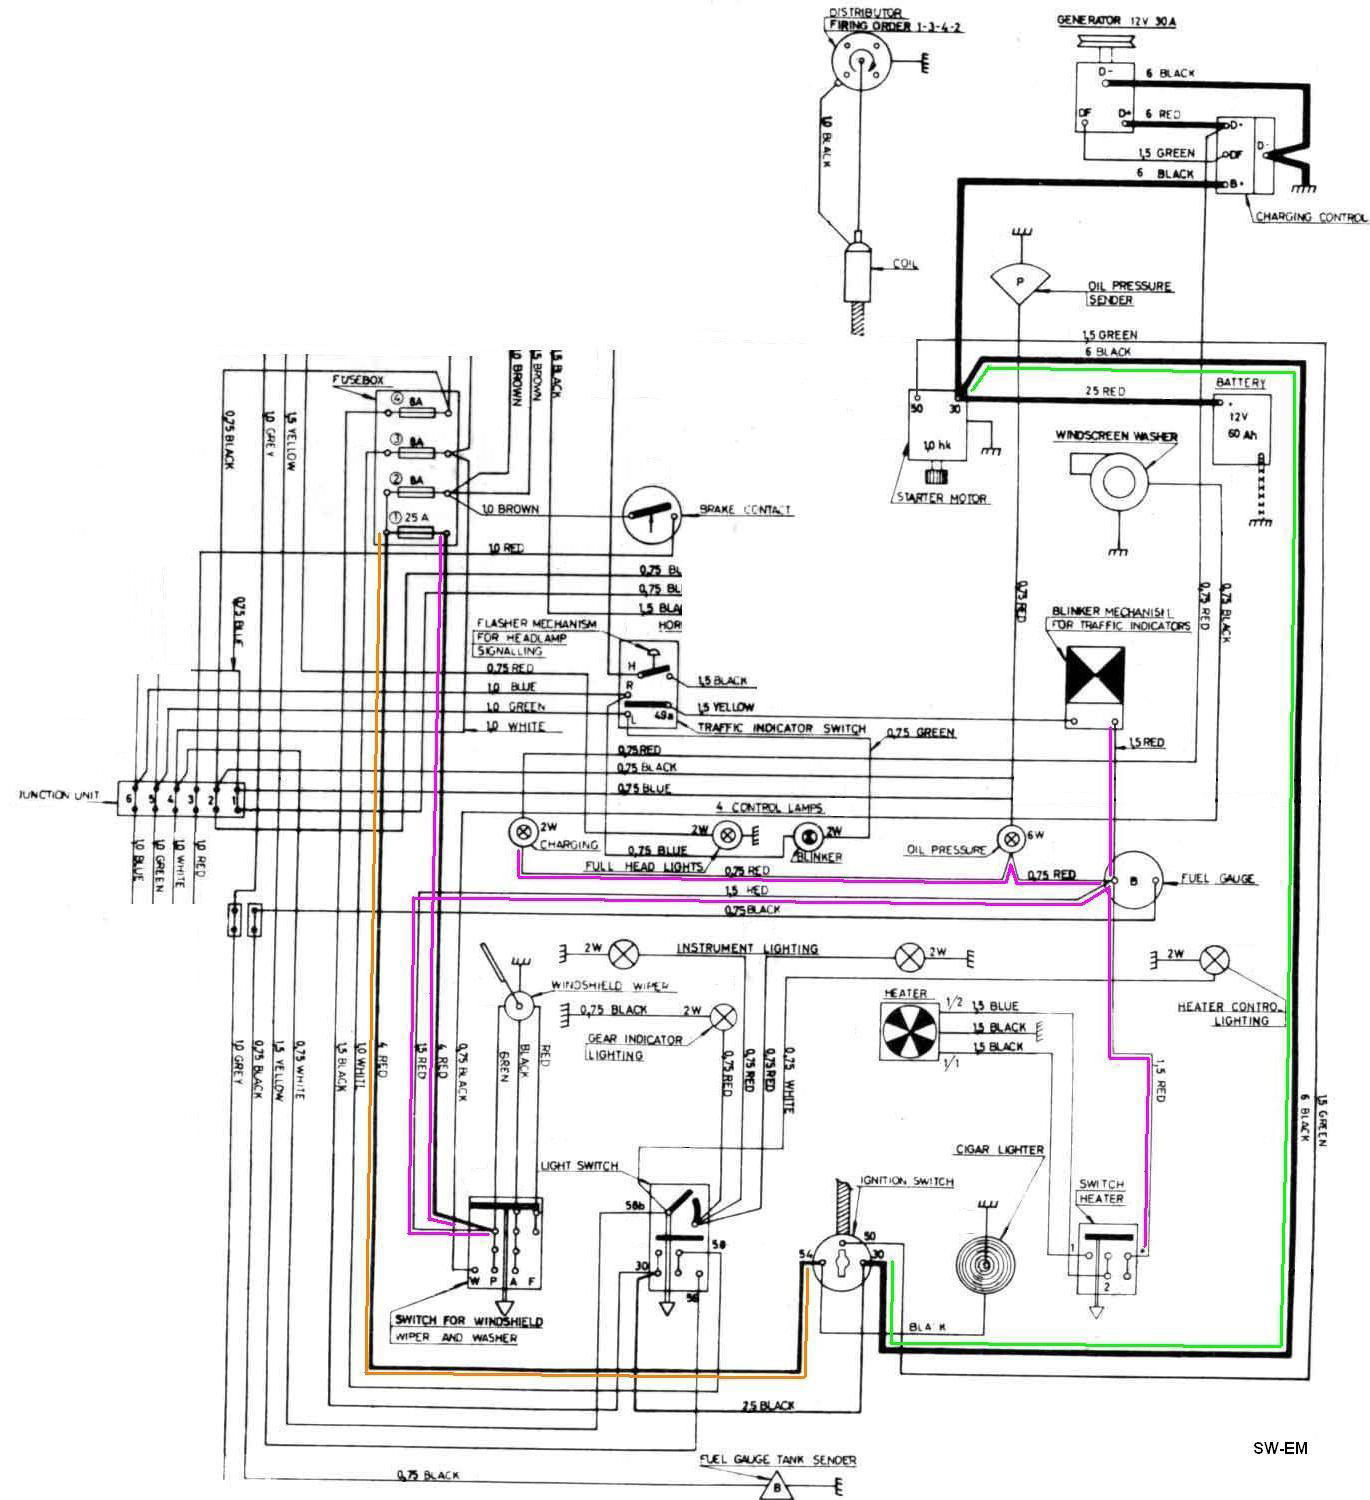 IGN SW wiring diag 122 markup 1800 ignition wiring swedish vs british design volvo 940 wiring diagram at panicattacktreatment.co